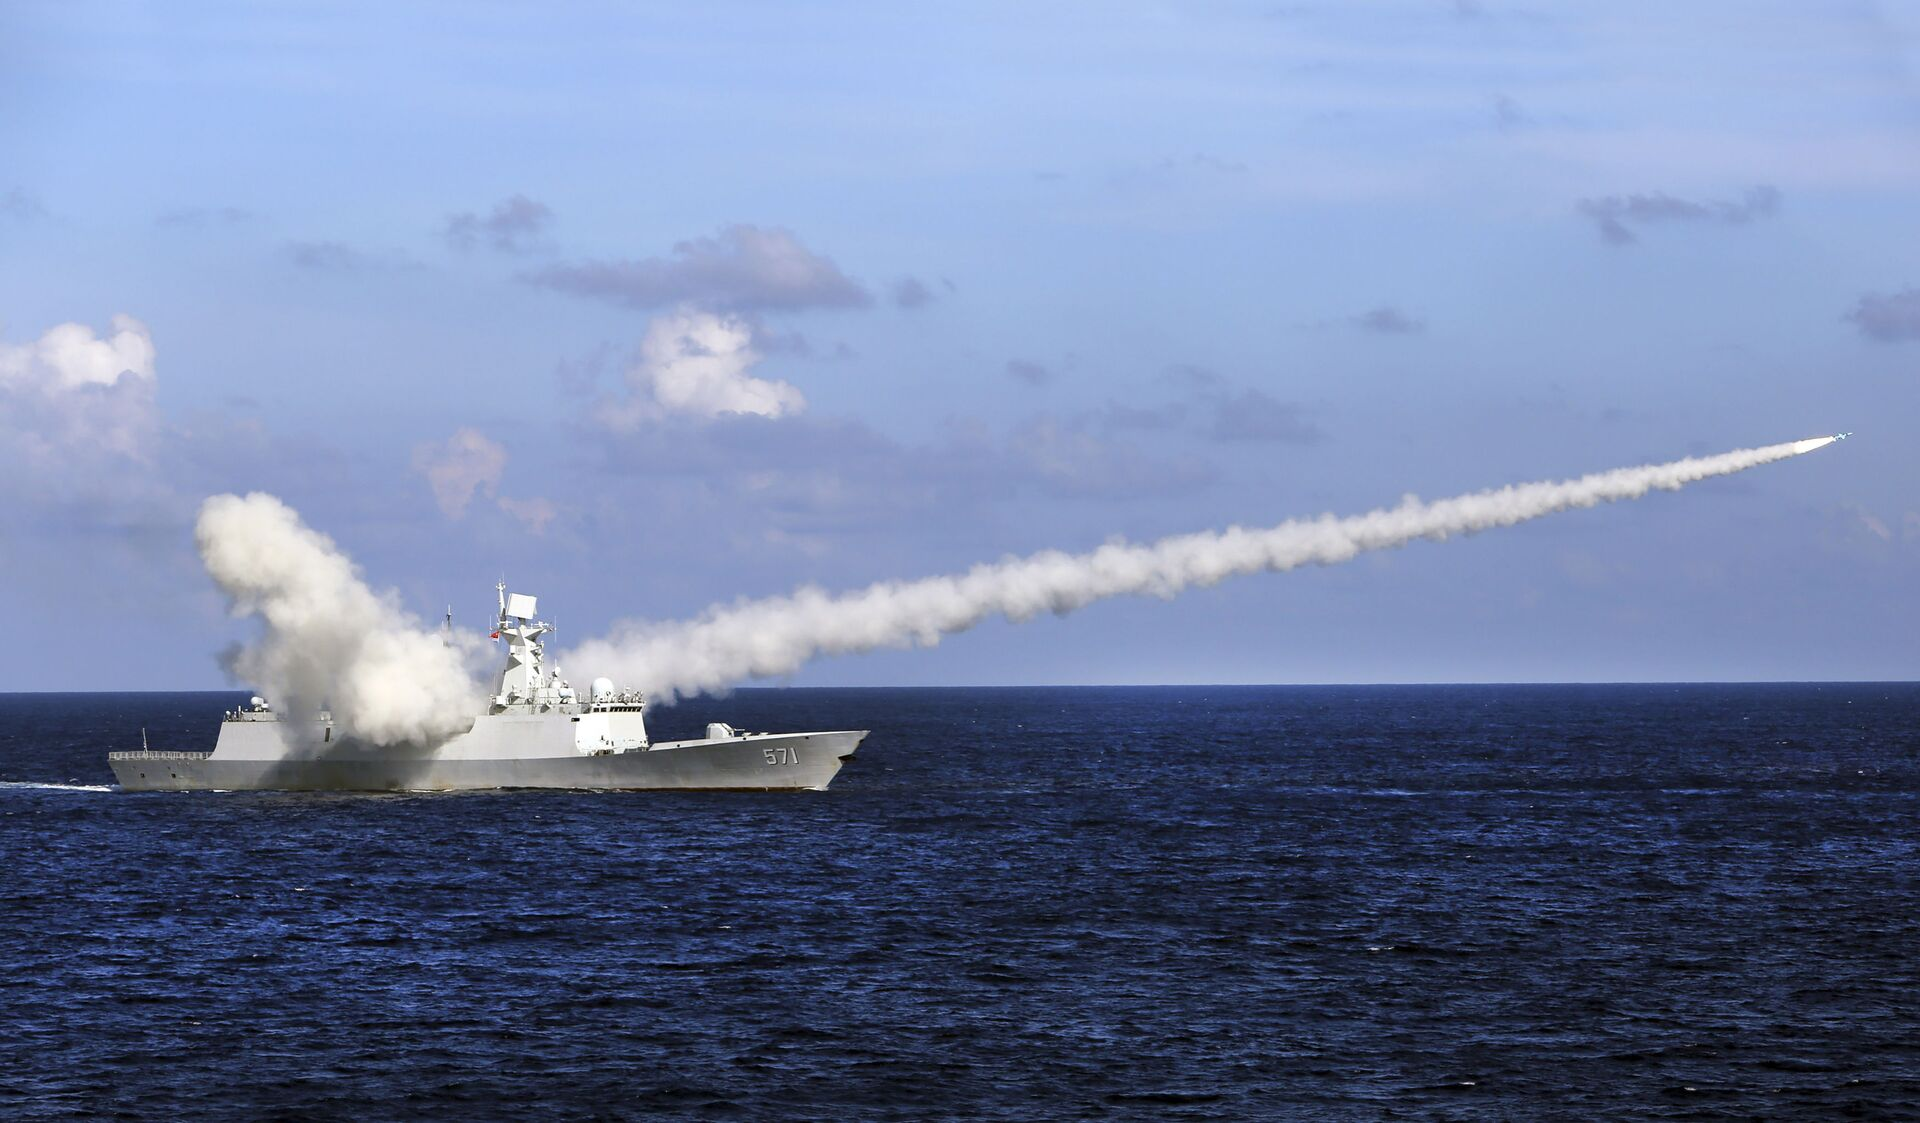 In this Friday, July 8, 2016, file photo released by Xinhua News Agency, Chinese missile frigate Yuncheng launches an anti-ship missile during a military exercise in the waters near south China's Hainan Island and Paracel Islands. China is holding another round of military drills in the South China Sea amid an uptick in such activity in the area highlighting growing tensions - Sputnik International, 1920, 07.09.2021